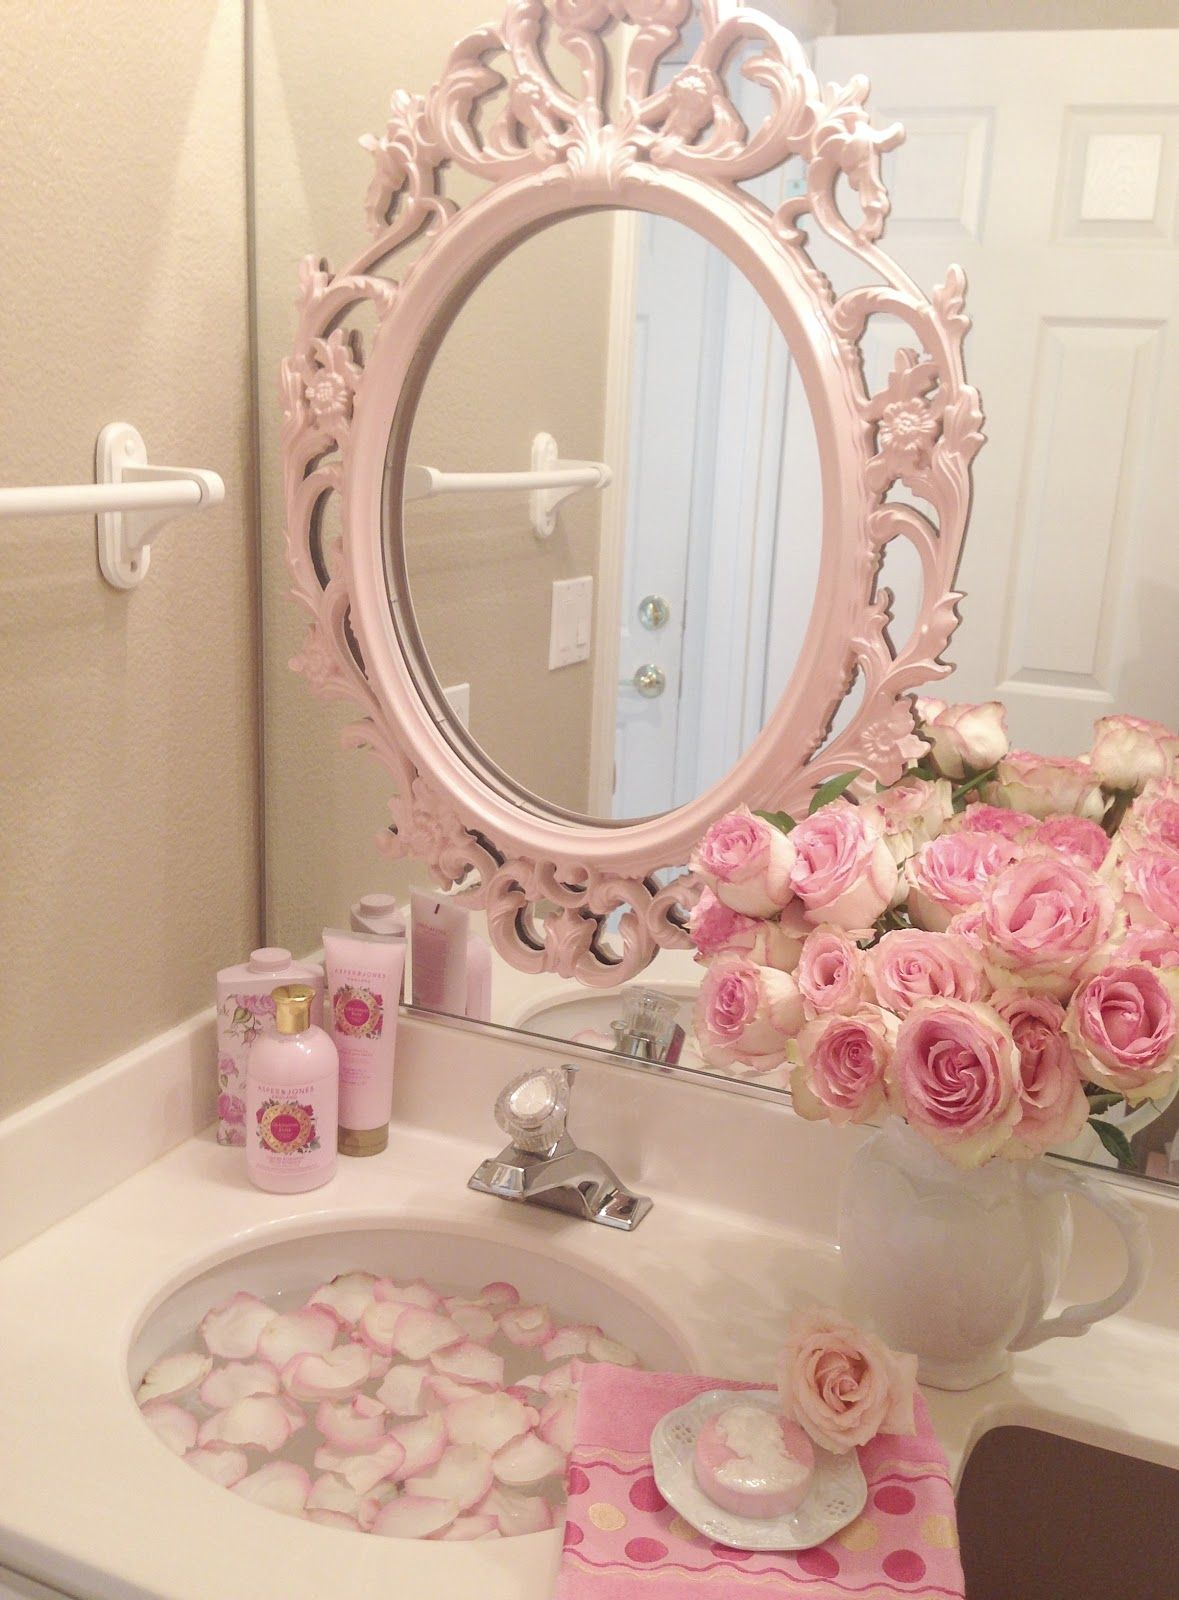 Pink Roses Shabby Cottage Chic Room Decor Romantic Home Bathroom Would Be Cute Room Decor